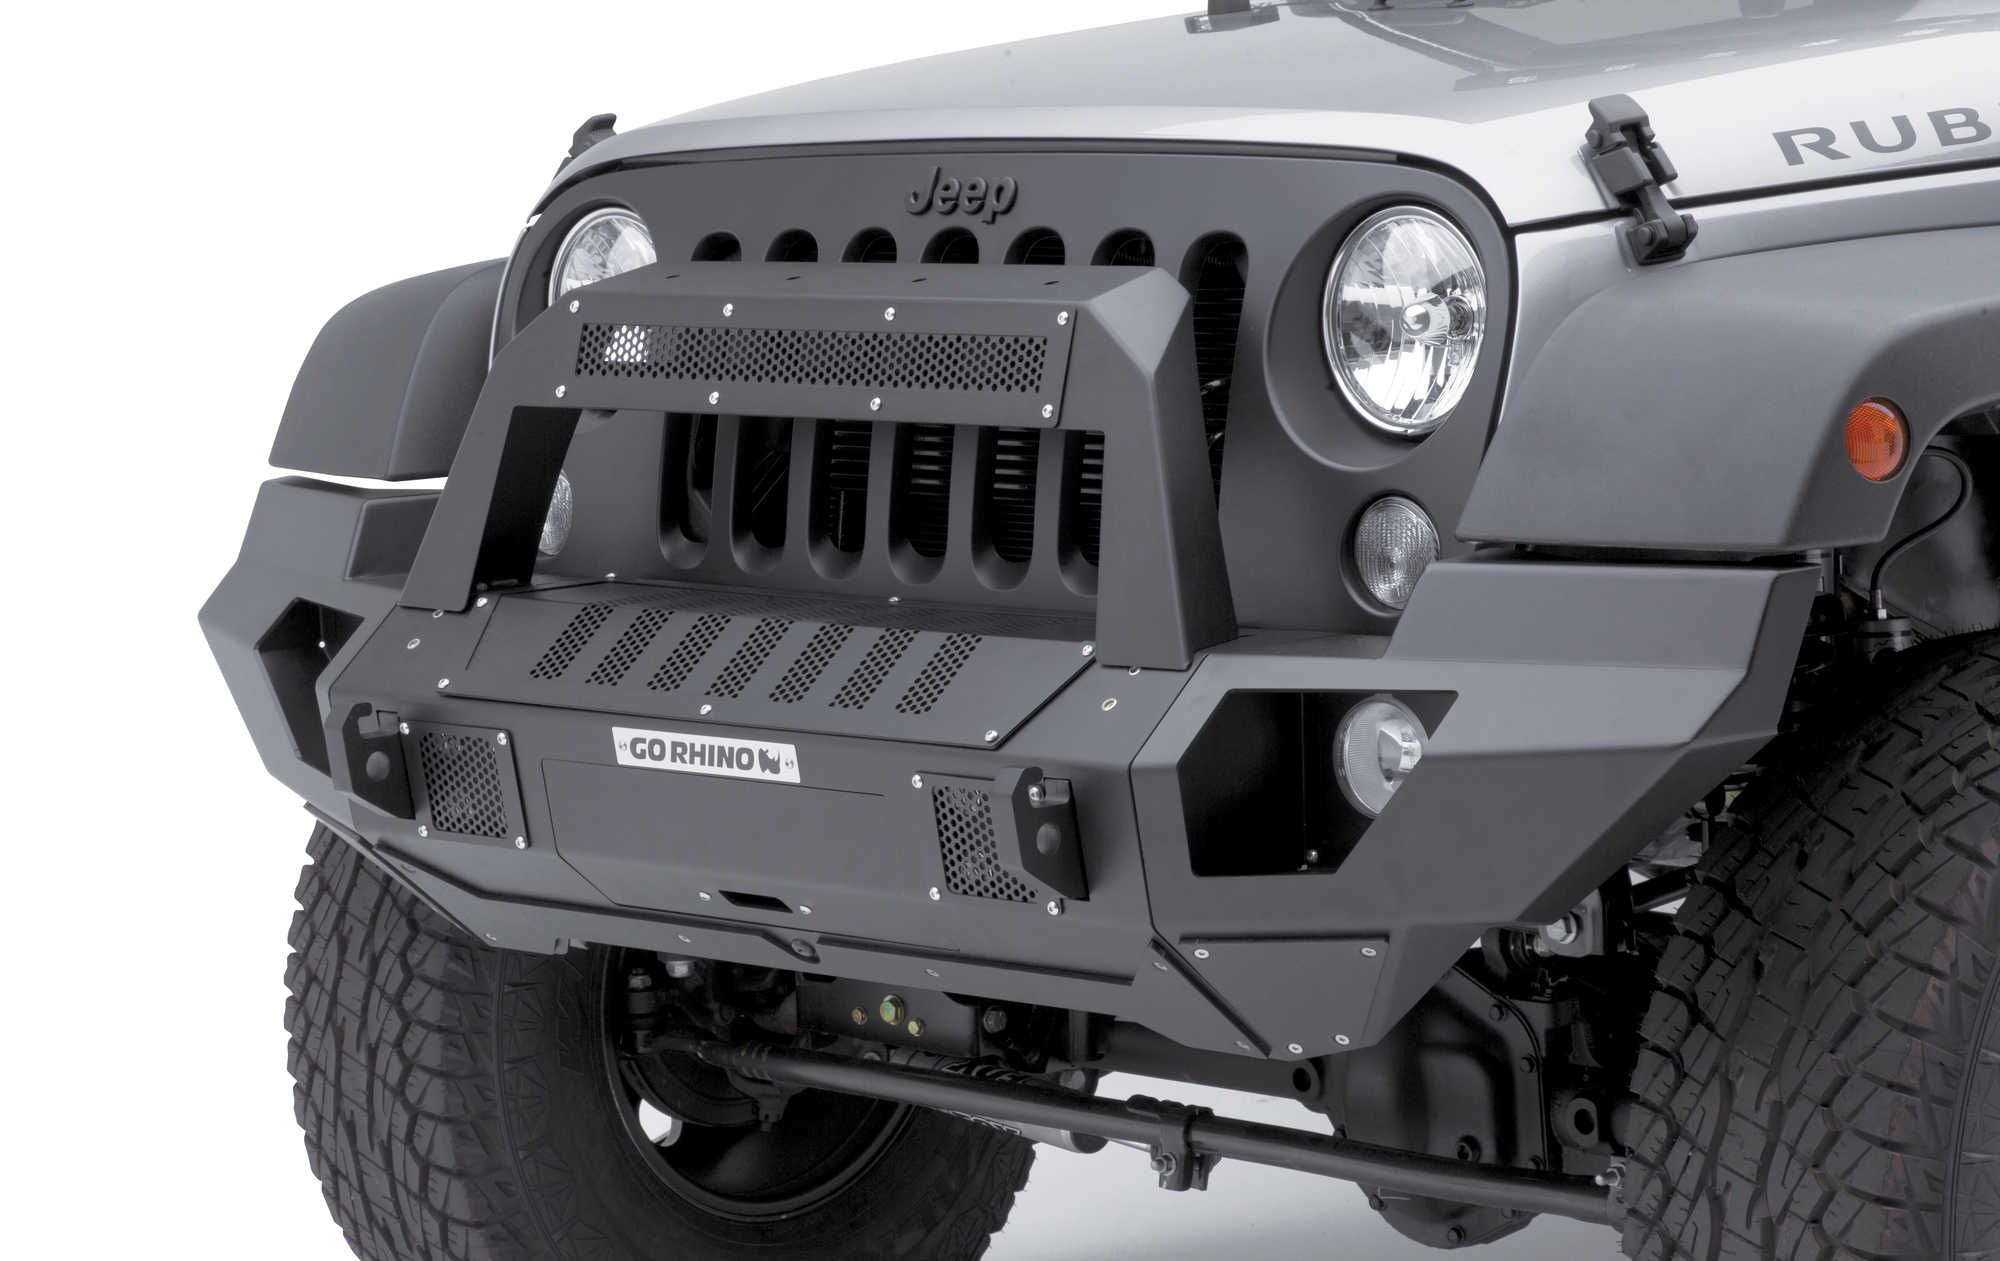 The Go Rhino Brj40 Front Bumper Is The Ultimate Modular Bumper For The Jeep Wrangler Jk Jeep Wrangler Bumpers Jeep Wrangler Front Bumper Jeep Wrangler Lights